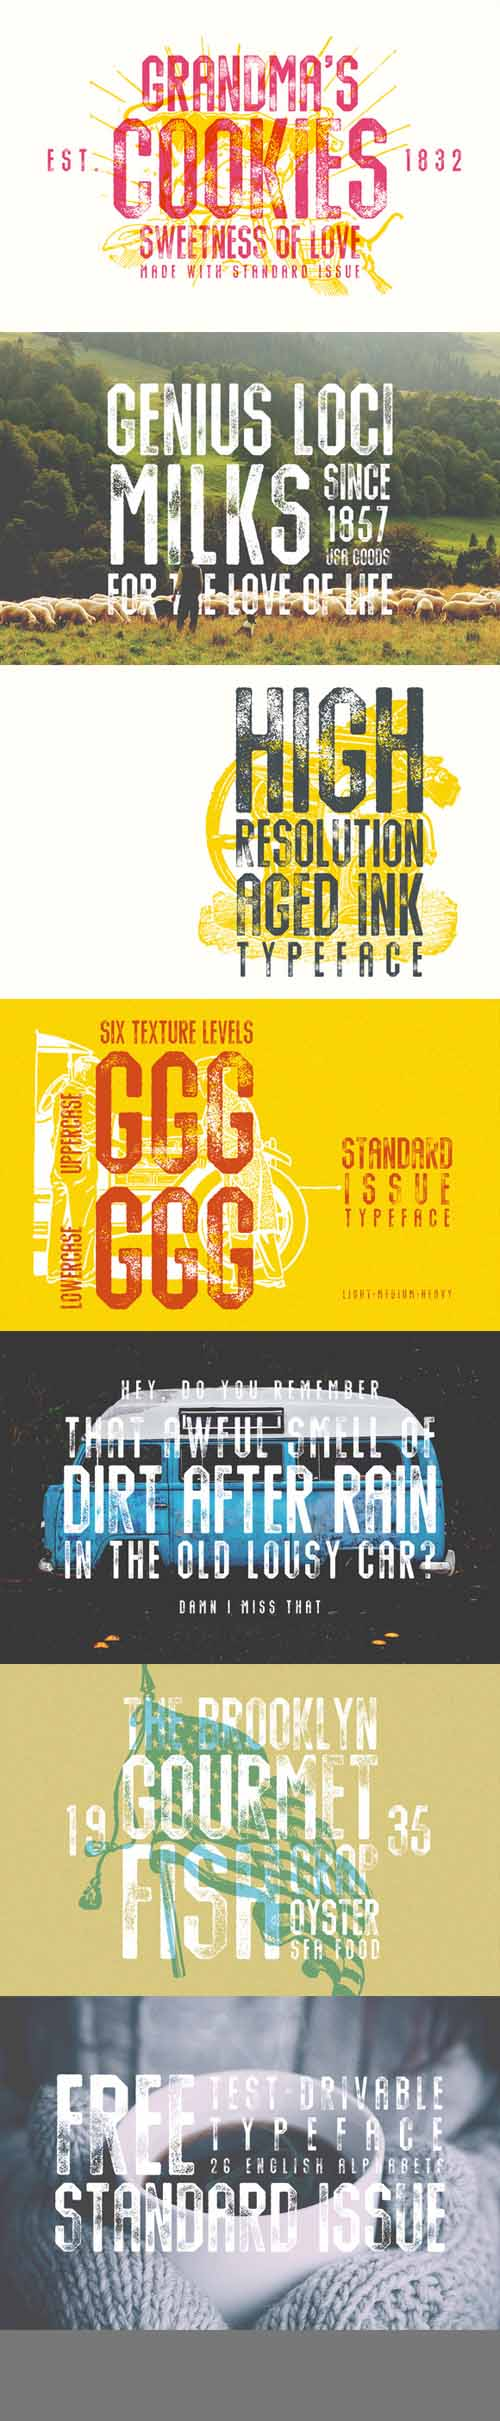 Standard Issue Typeface Font